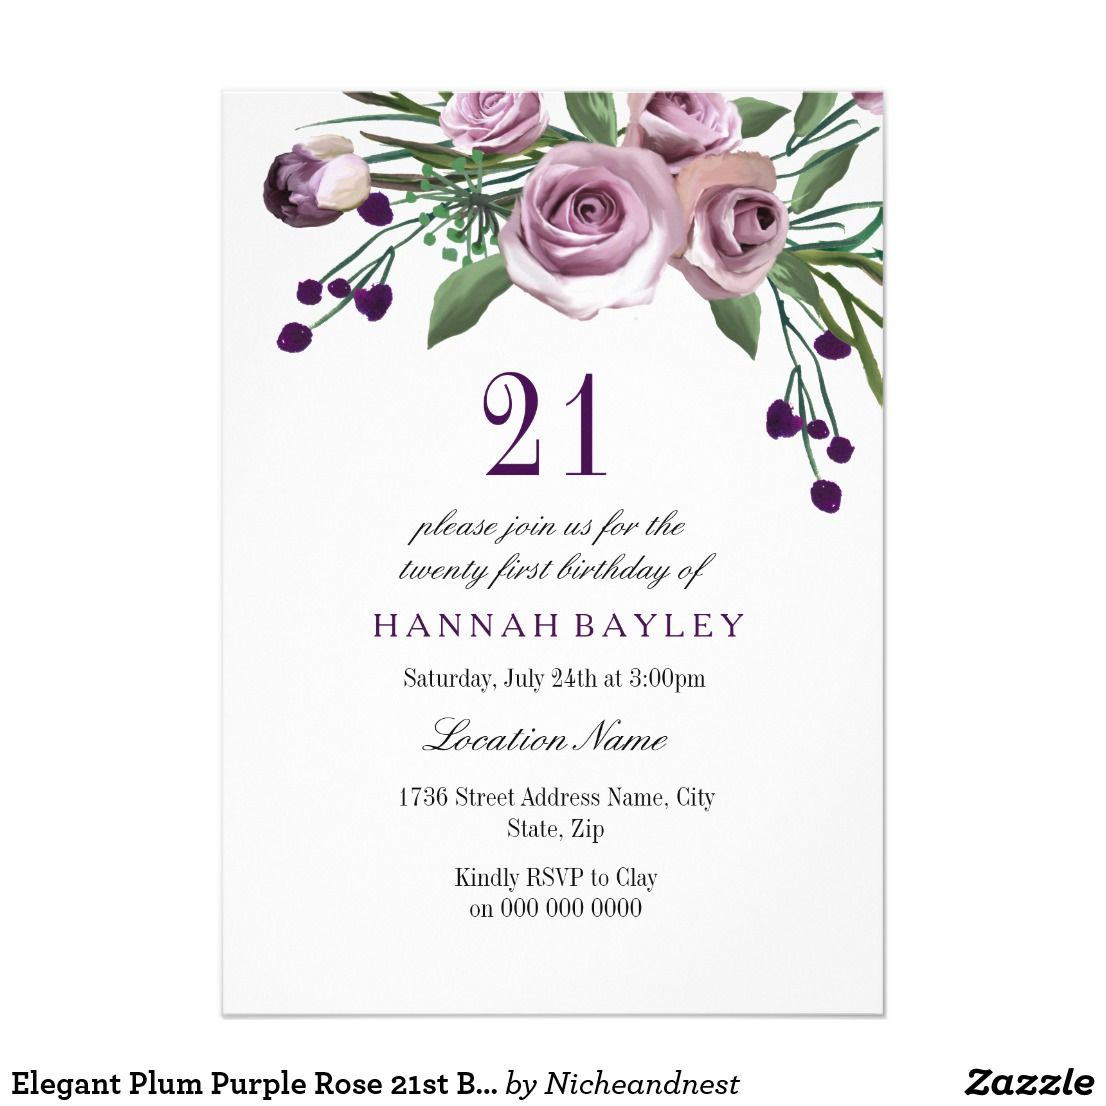 Elegant Plum Purple Rose 21st Birthday Invitation